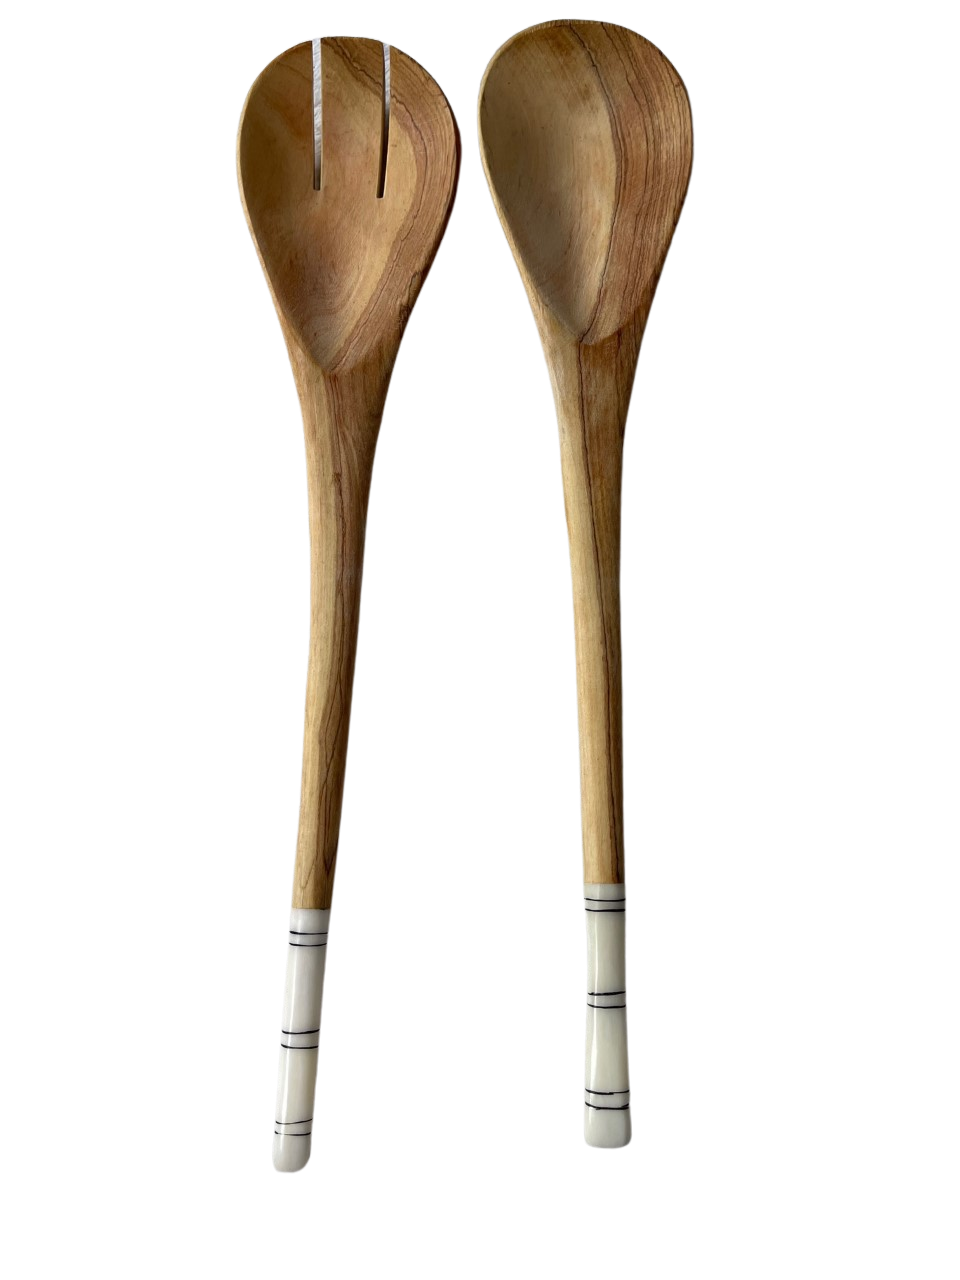 Bone At End Olivewood Spoons